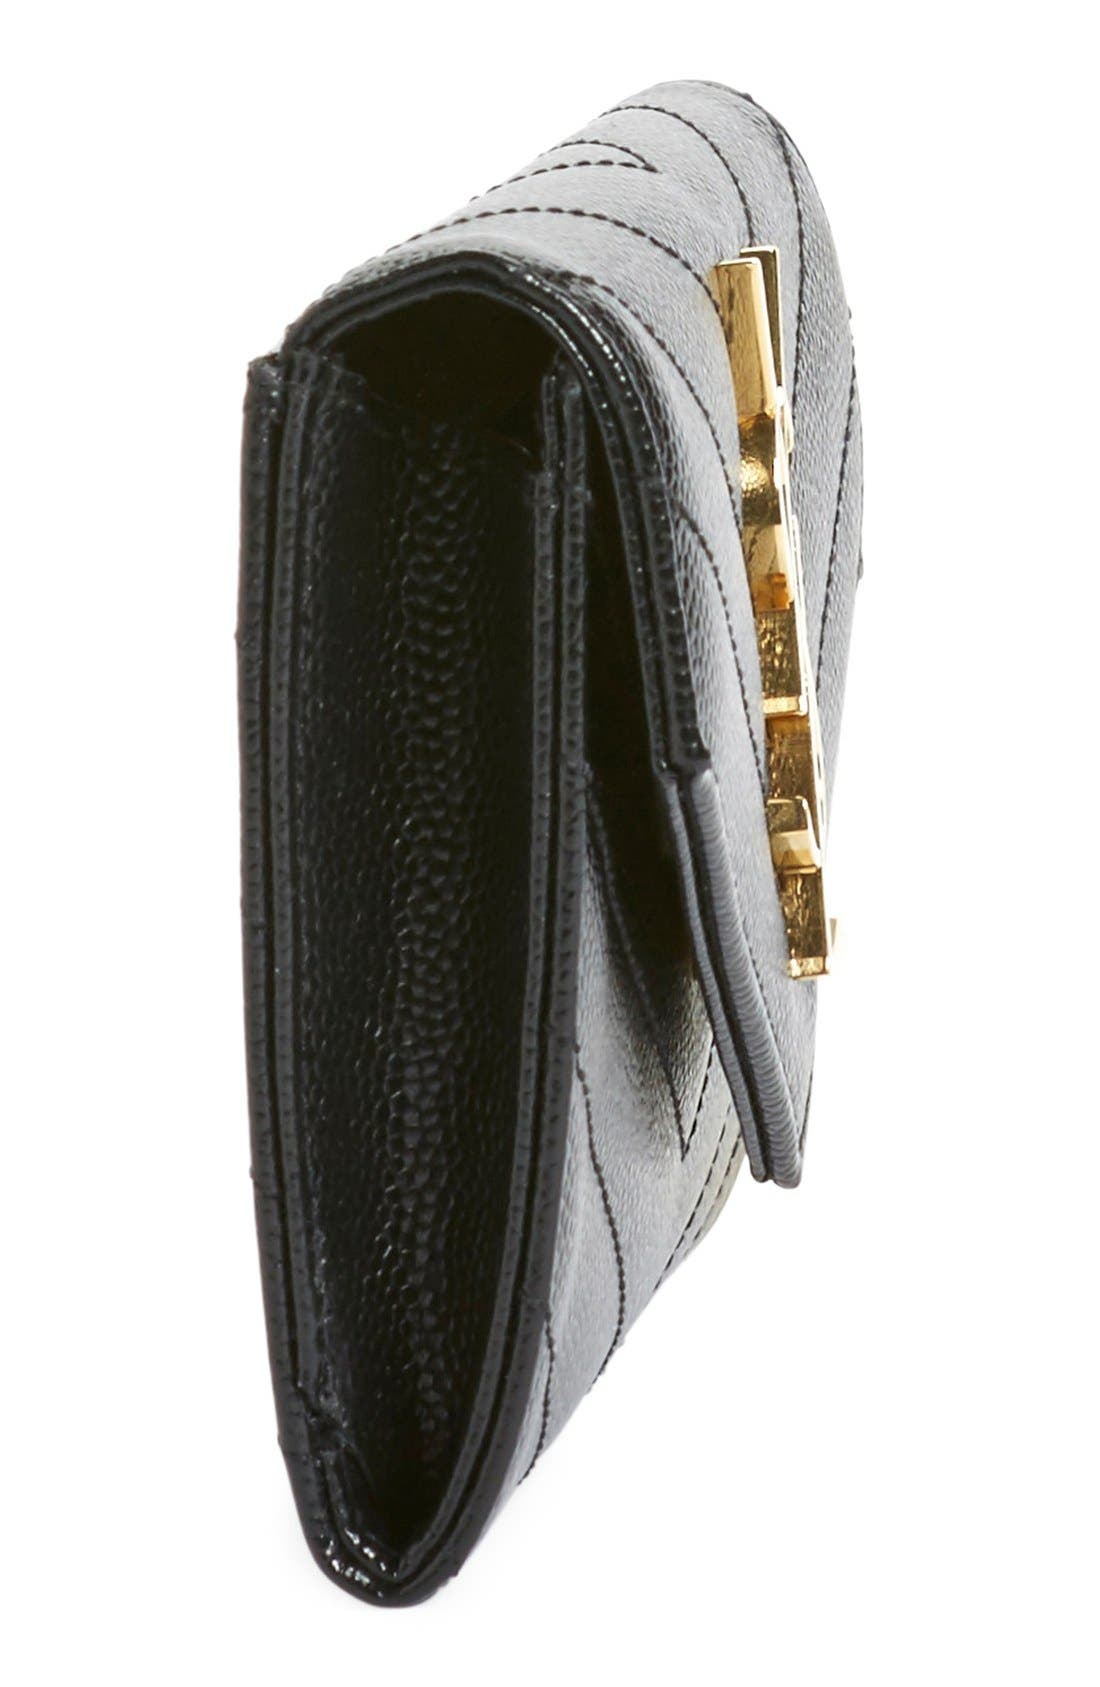 'Monogram' Quilted Leather French Wallet,                             Alternate thumbnail 6, color,                             Noir